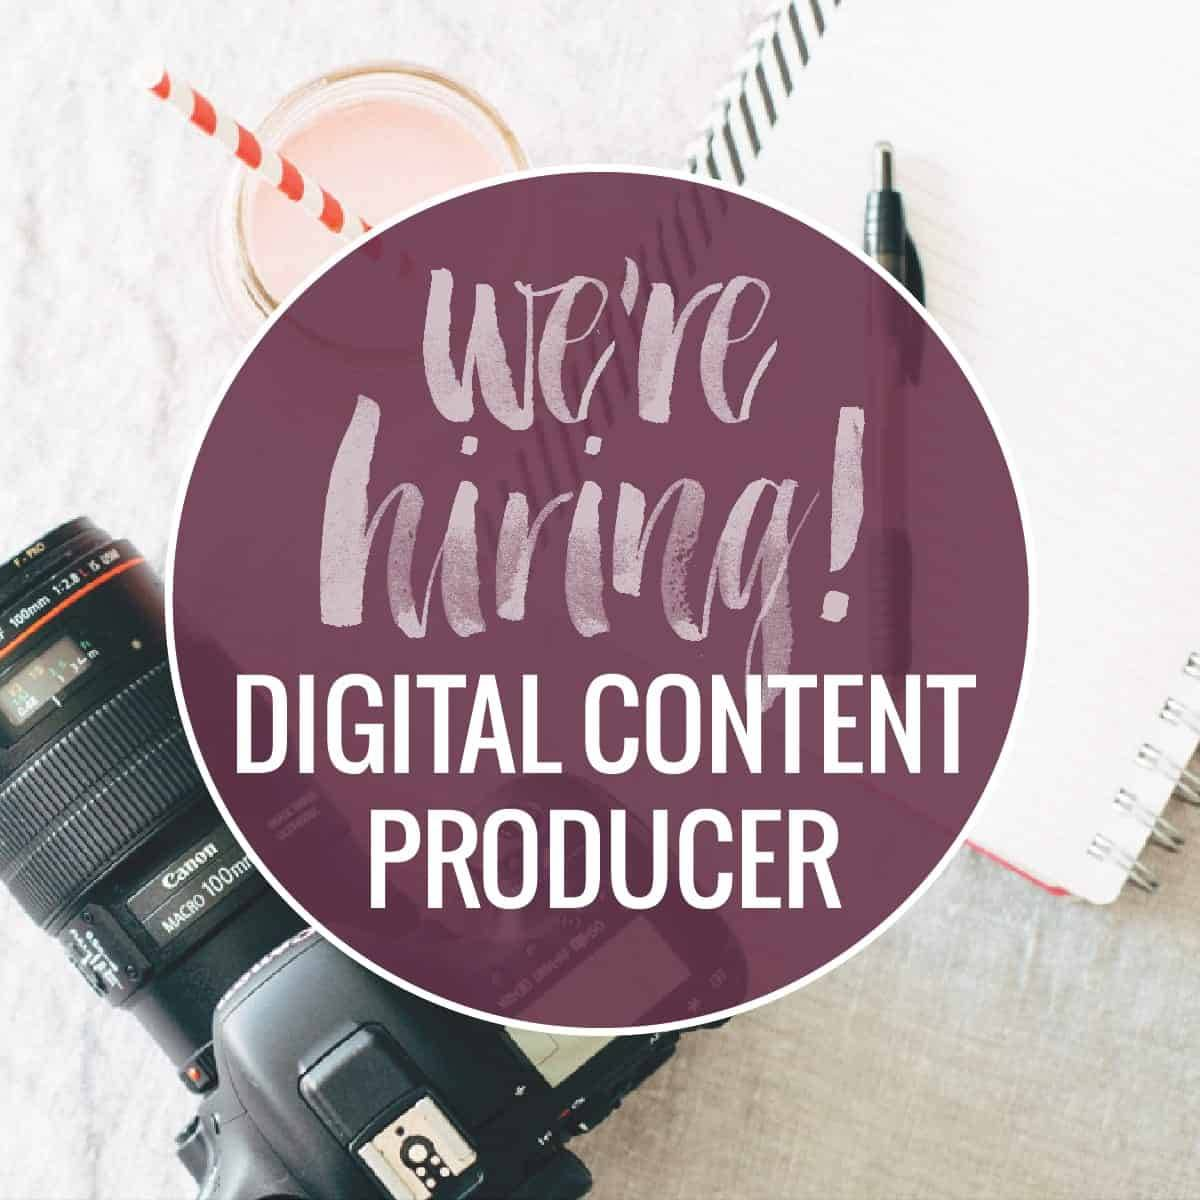 We're Hiring a Digital Content Producer.